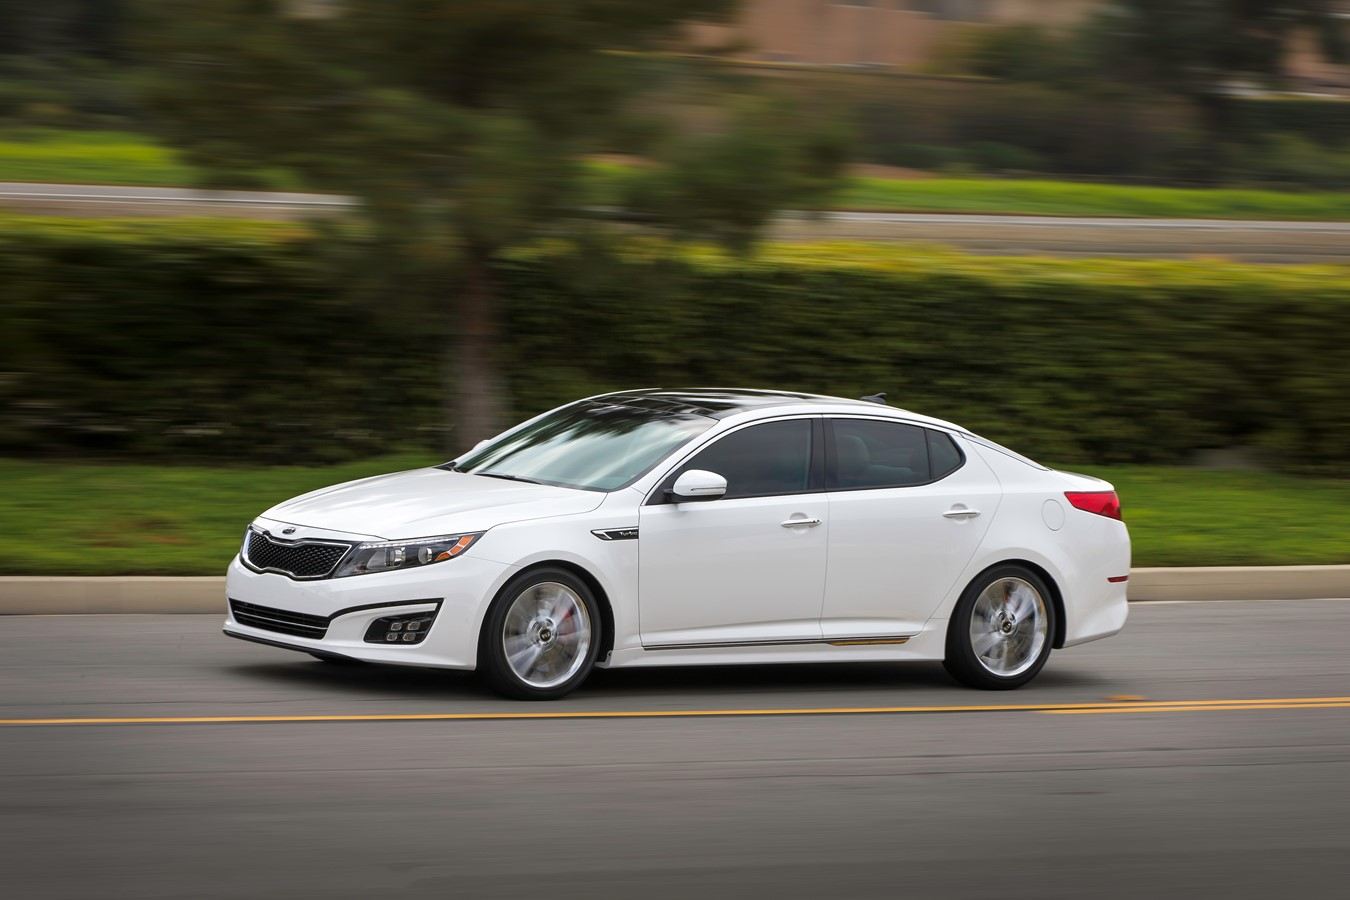 2015 kia optima rh kiamedia com kia optima owners manual 2012 kia optima owners manual 2015